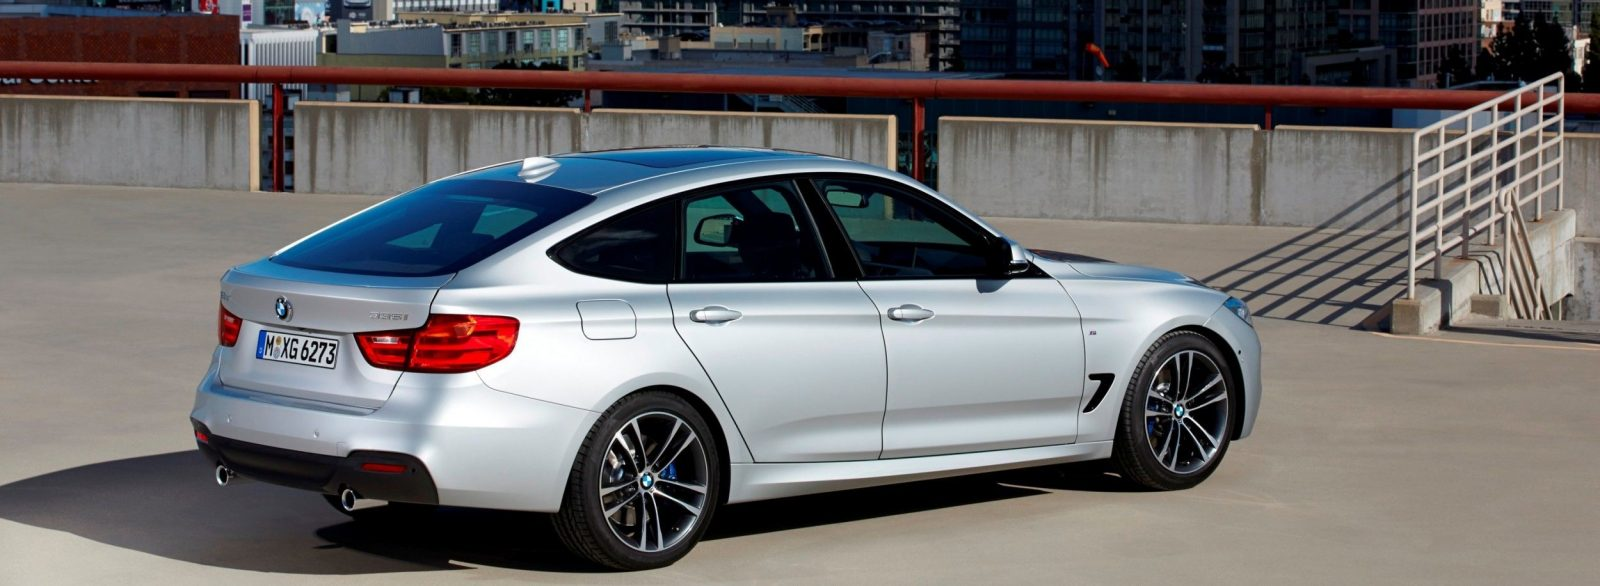 Best of Awards - 1000 miles at 100MPH - 2014 M Sport BMW 335i GT 72